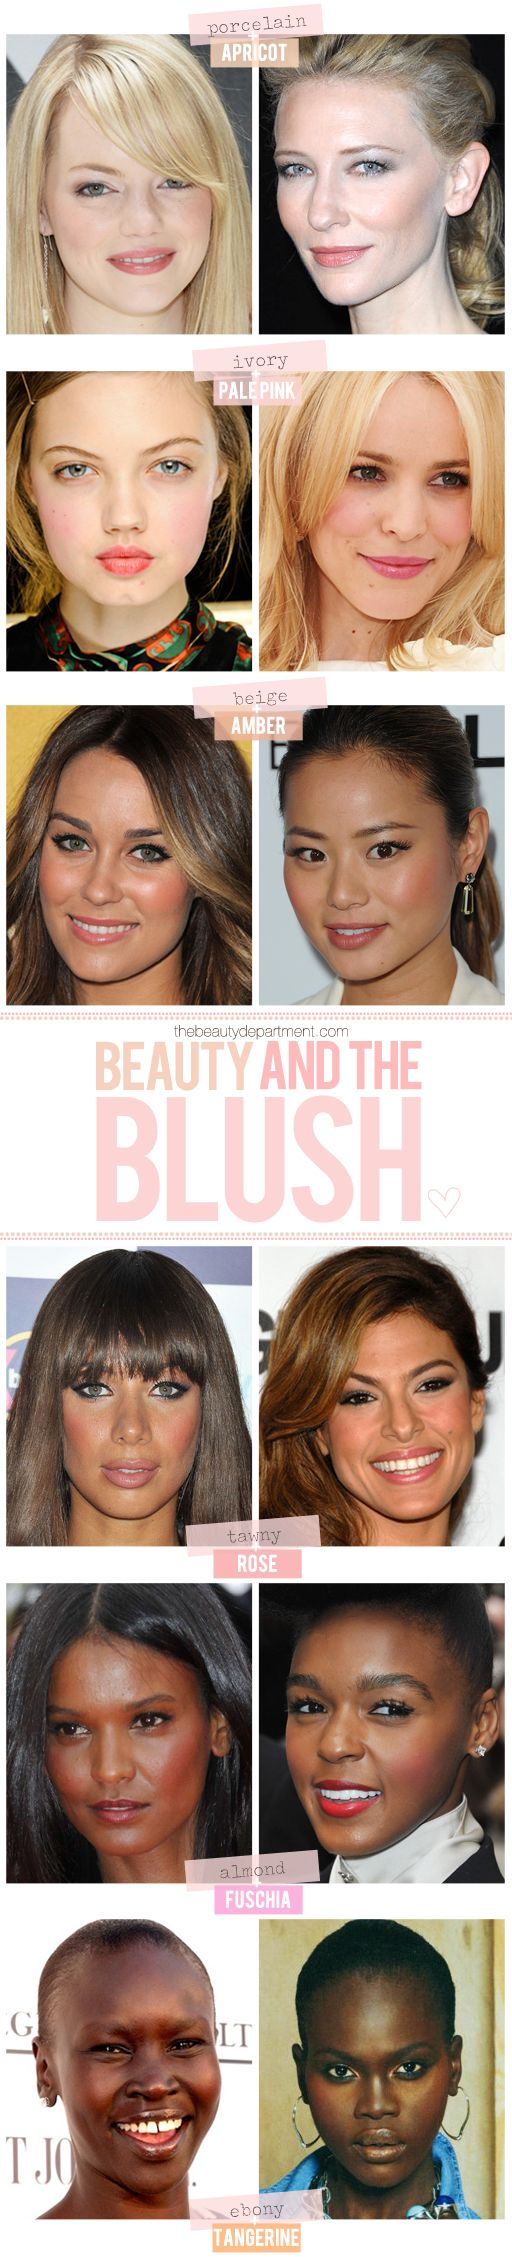 A go-to guide for flattering blush tones.